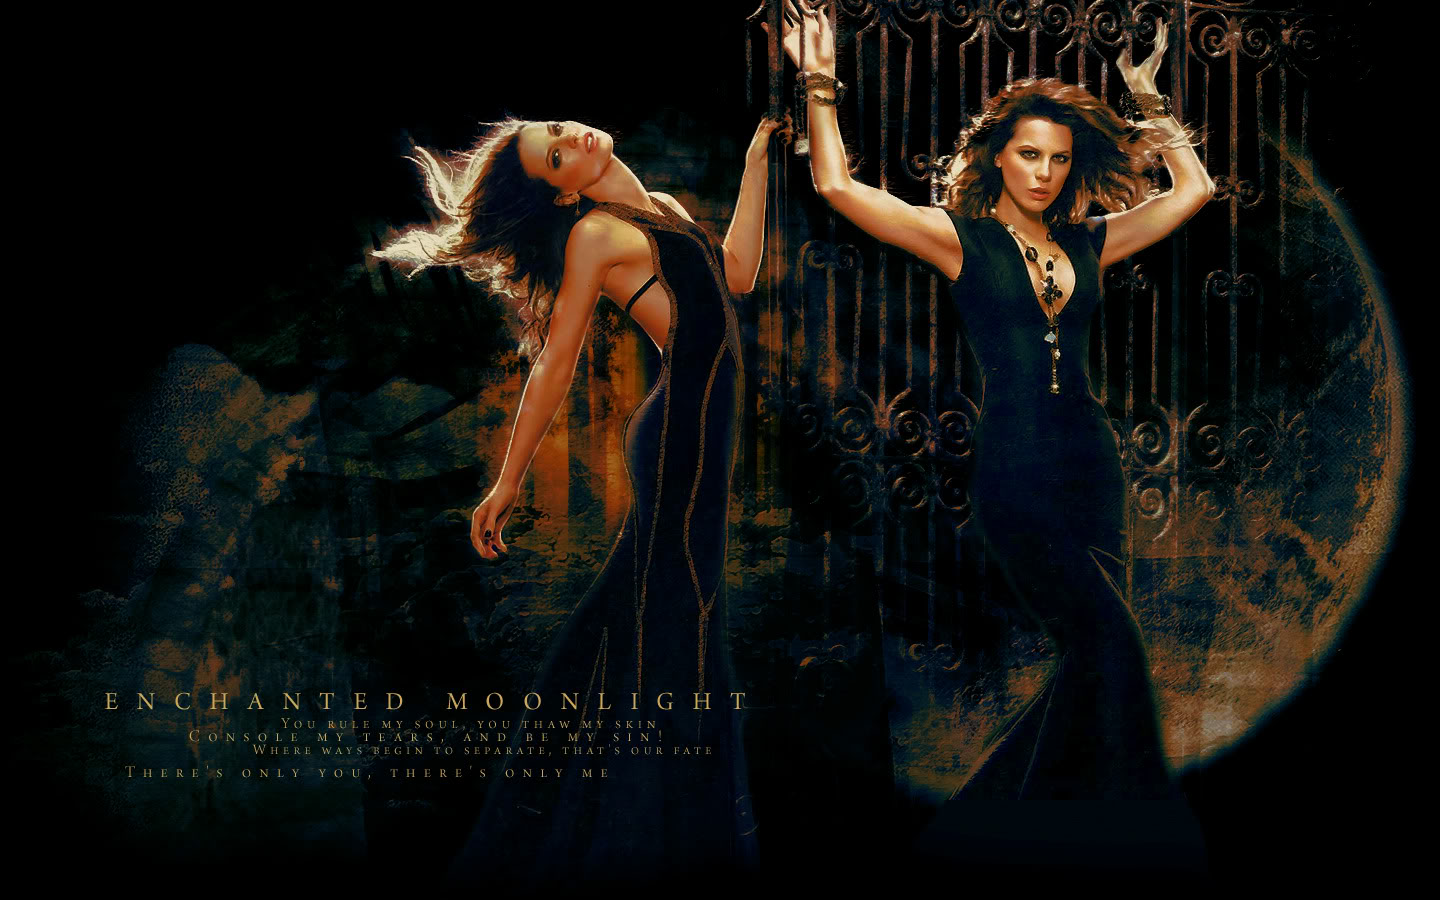 Buffy Icons [BuffyGilesEthan] wicca jaz New Actress Wallpapers 1440x900